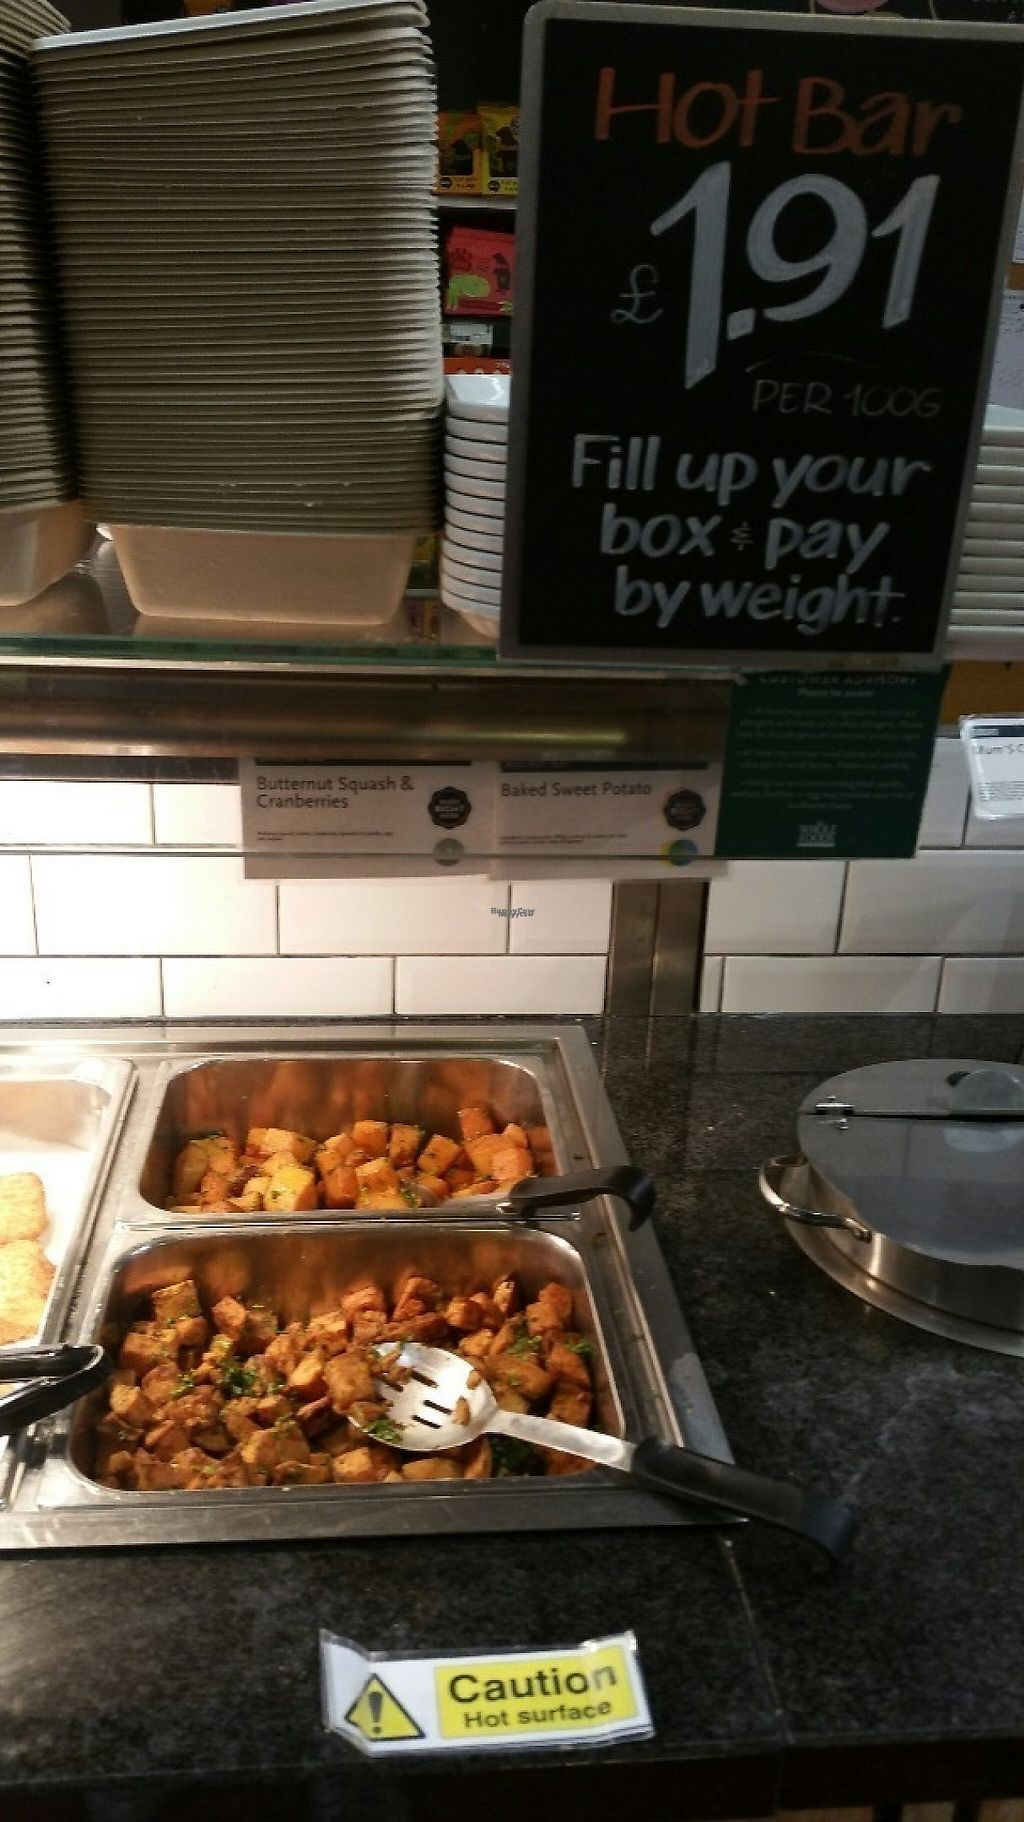 """Photo of Whole Foods Market - Clapham Junction  by <a href=""""/members/profile/jollypig"""">jollypig</a> <br/>Veggie grub <br/> April 29, 2017  - <a href='/contact/abuse/image/736/253712'>Report</a>"""